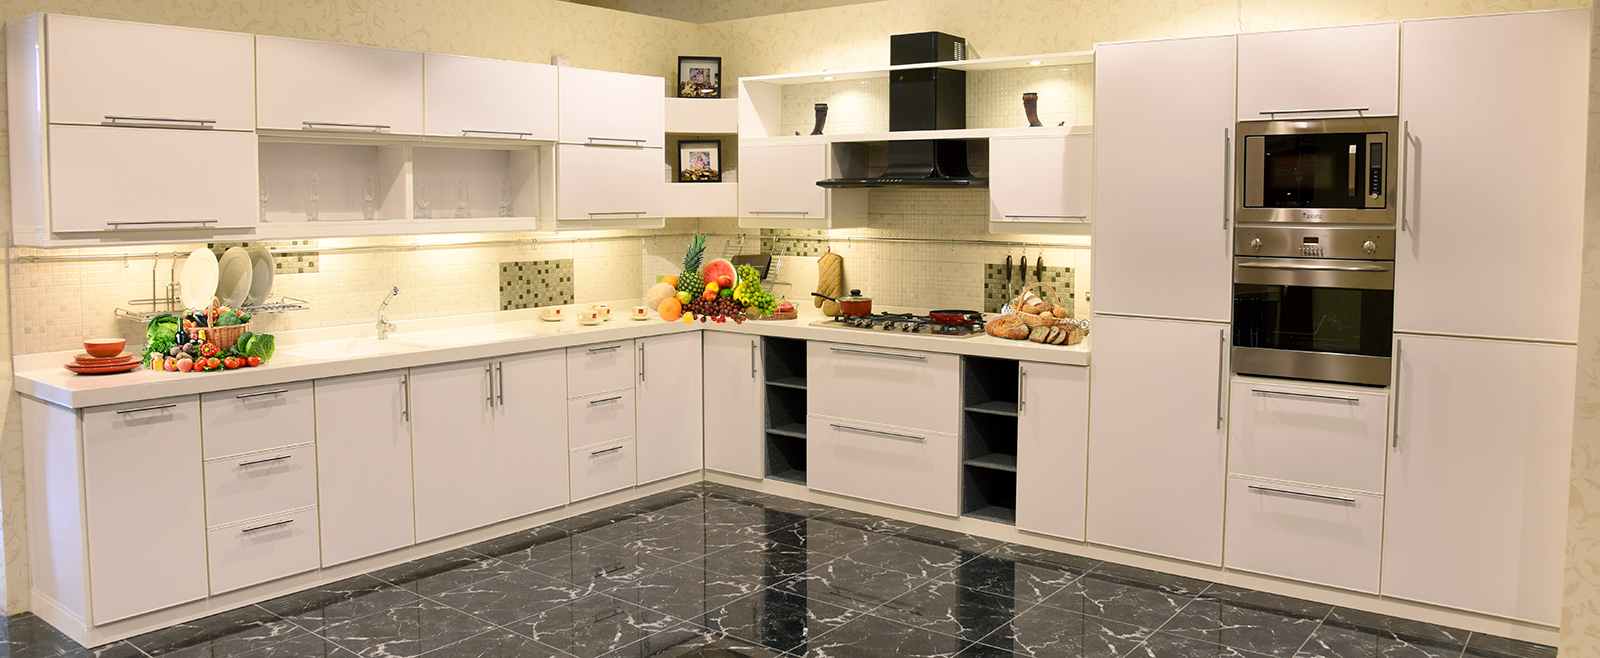 AL Olayan Kitchens Co.